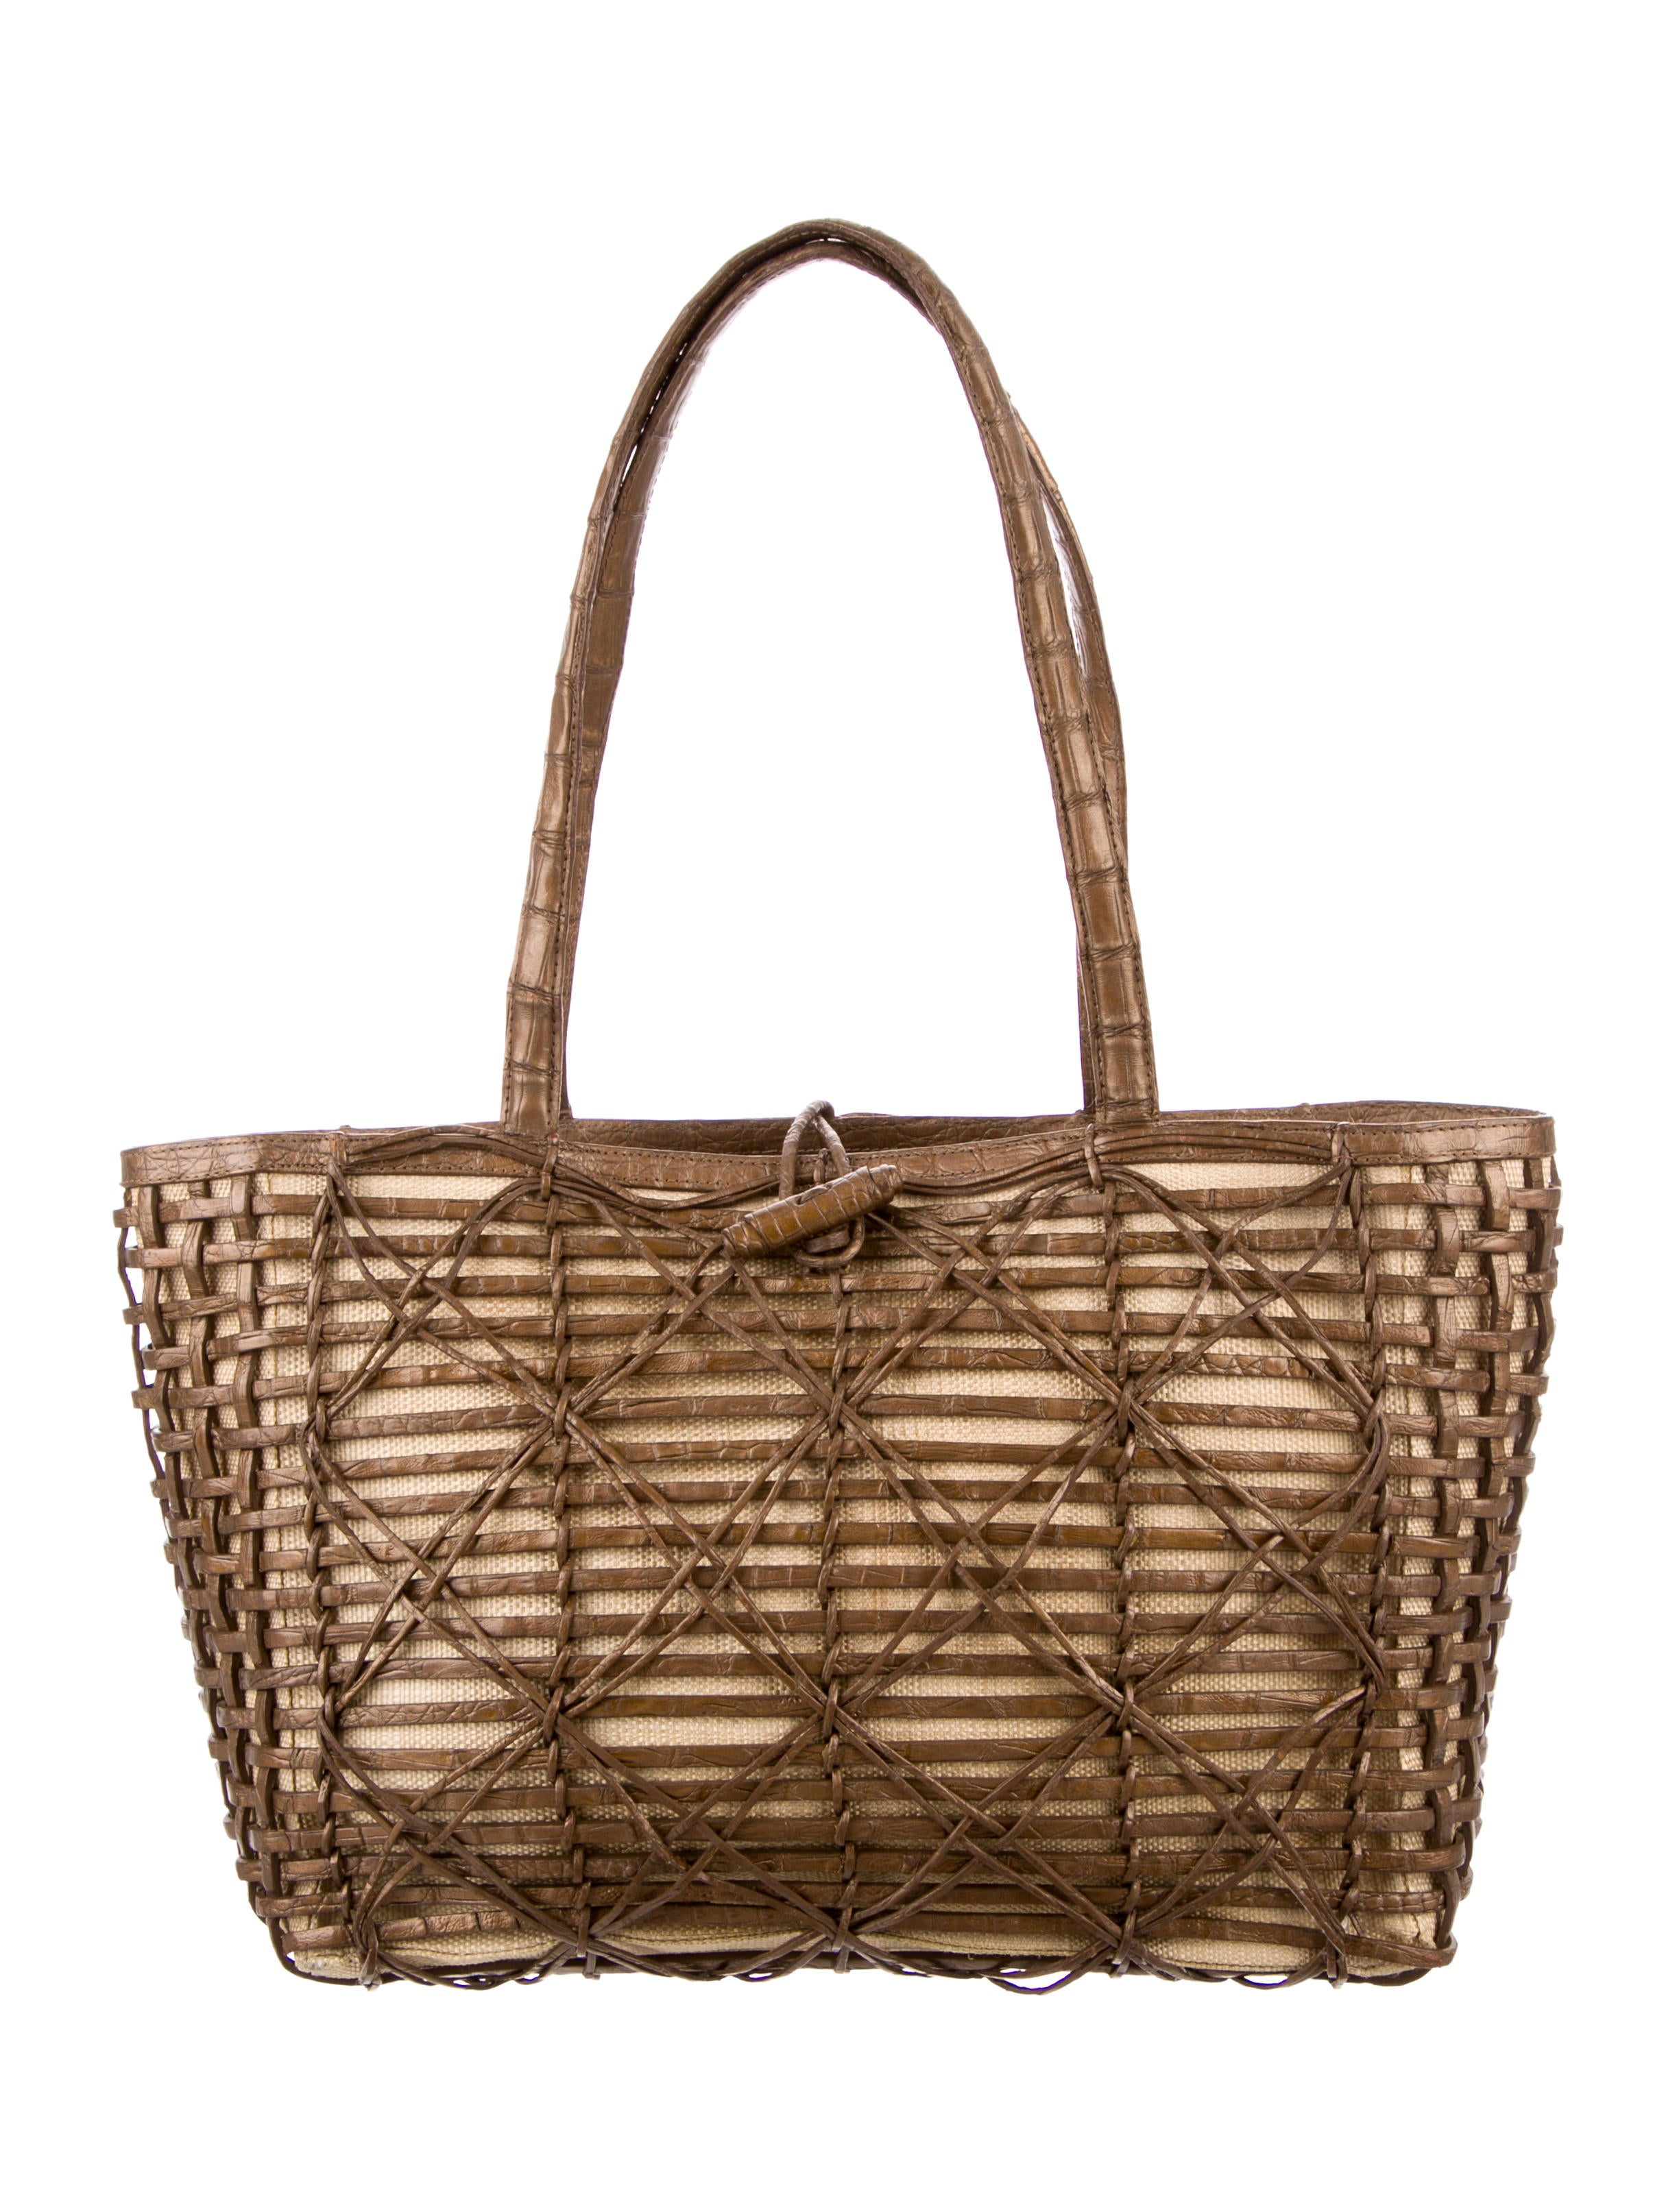 Nancy gonzalez crocodile woven tote handbags nan22483 for Nancy gonzalez crocodile tote